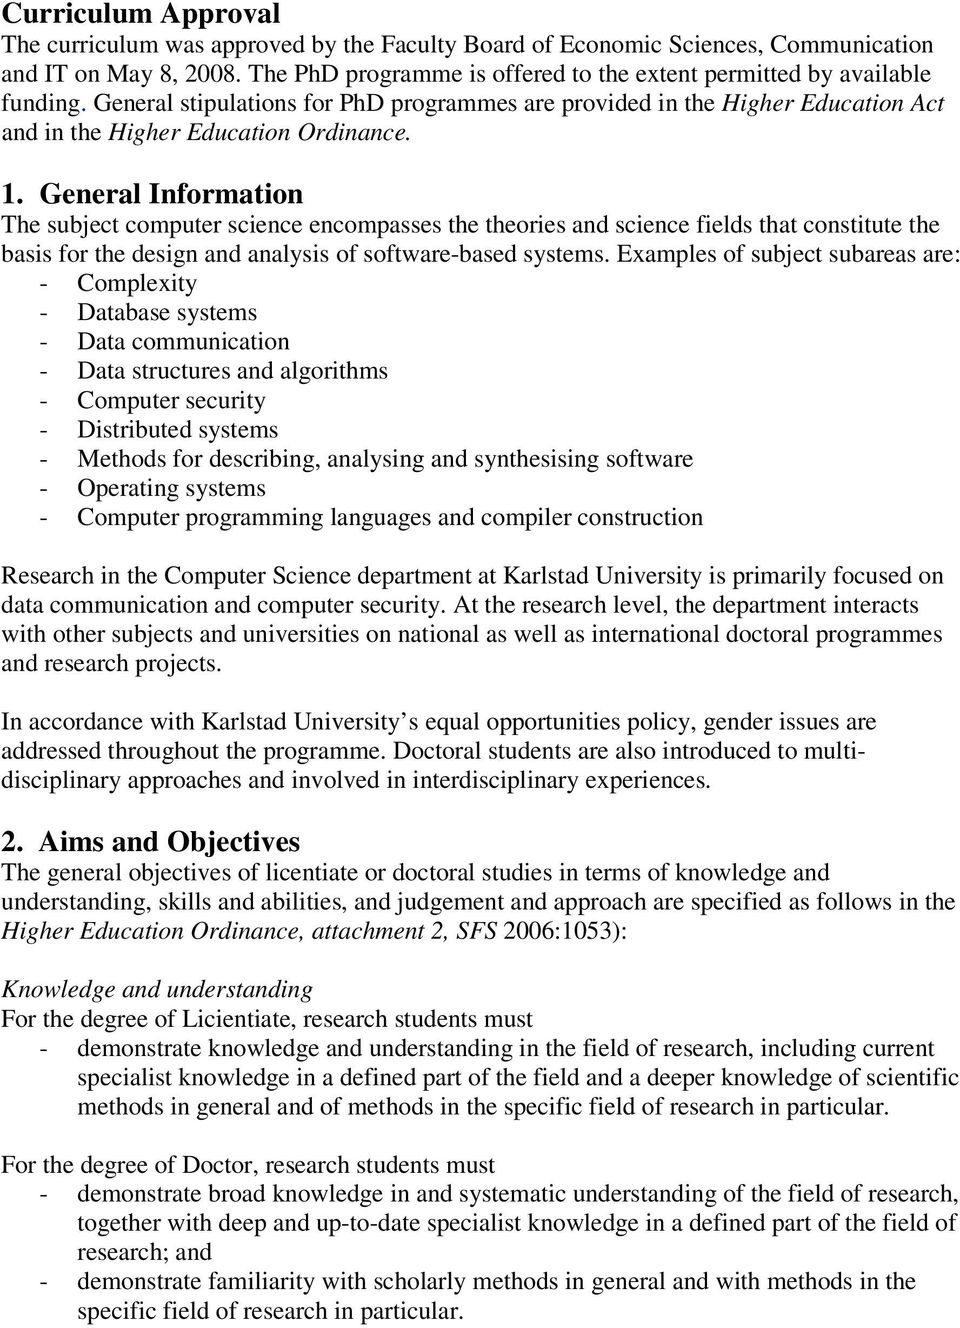 General Information The subject computer science encompasses the theories and science fields that constitute the basis for the design and analysis of software-based systems.